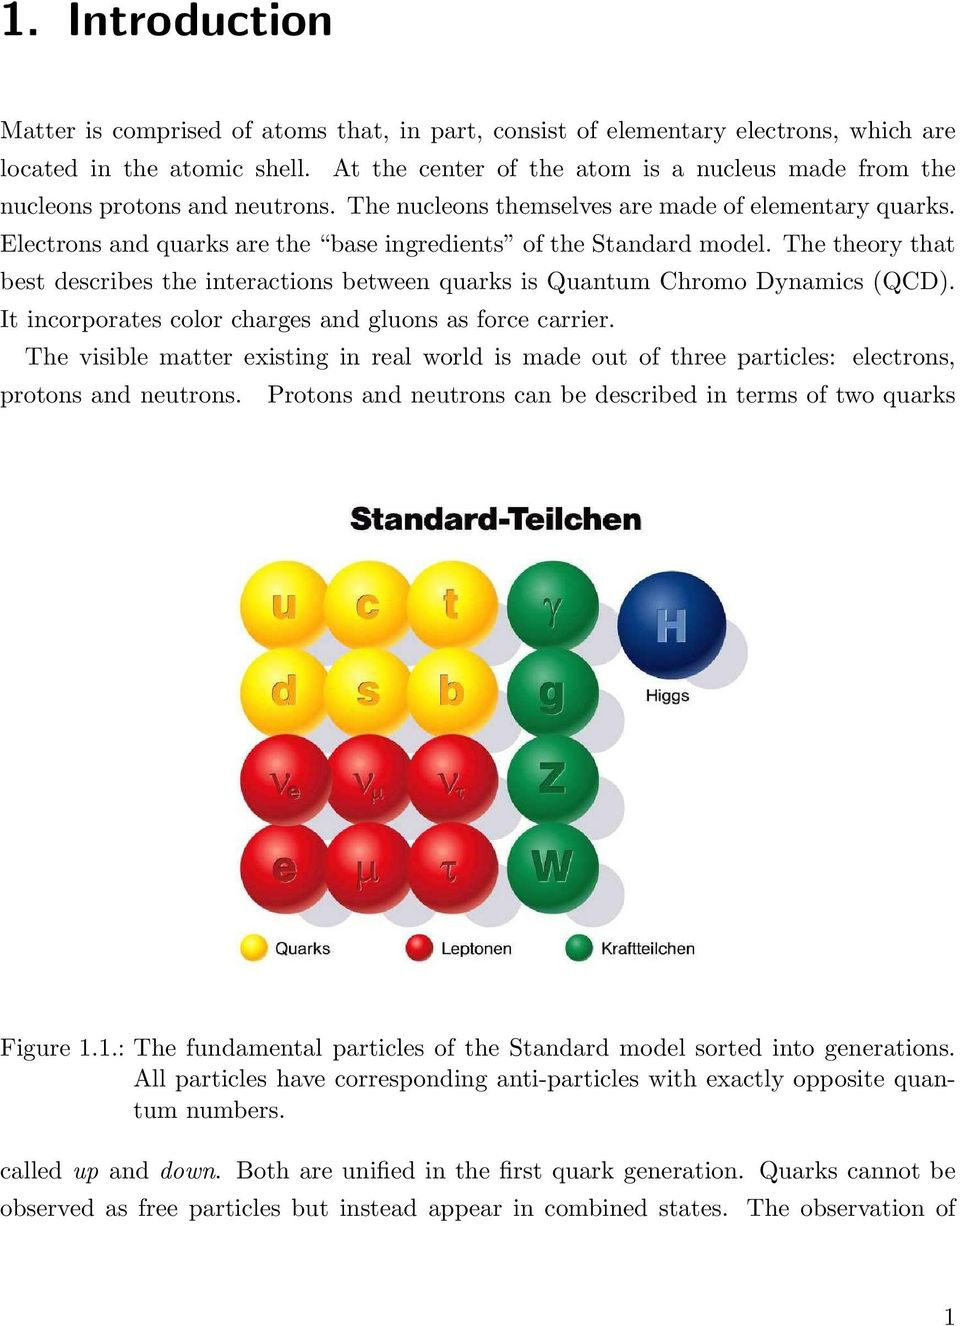 Electrons and quarks are the base ingredients of the Standard model. The theory that best describes the interactions between quarks is Quantum Chromo Dynamics (QCD).